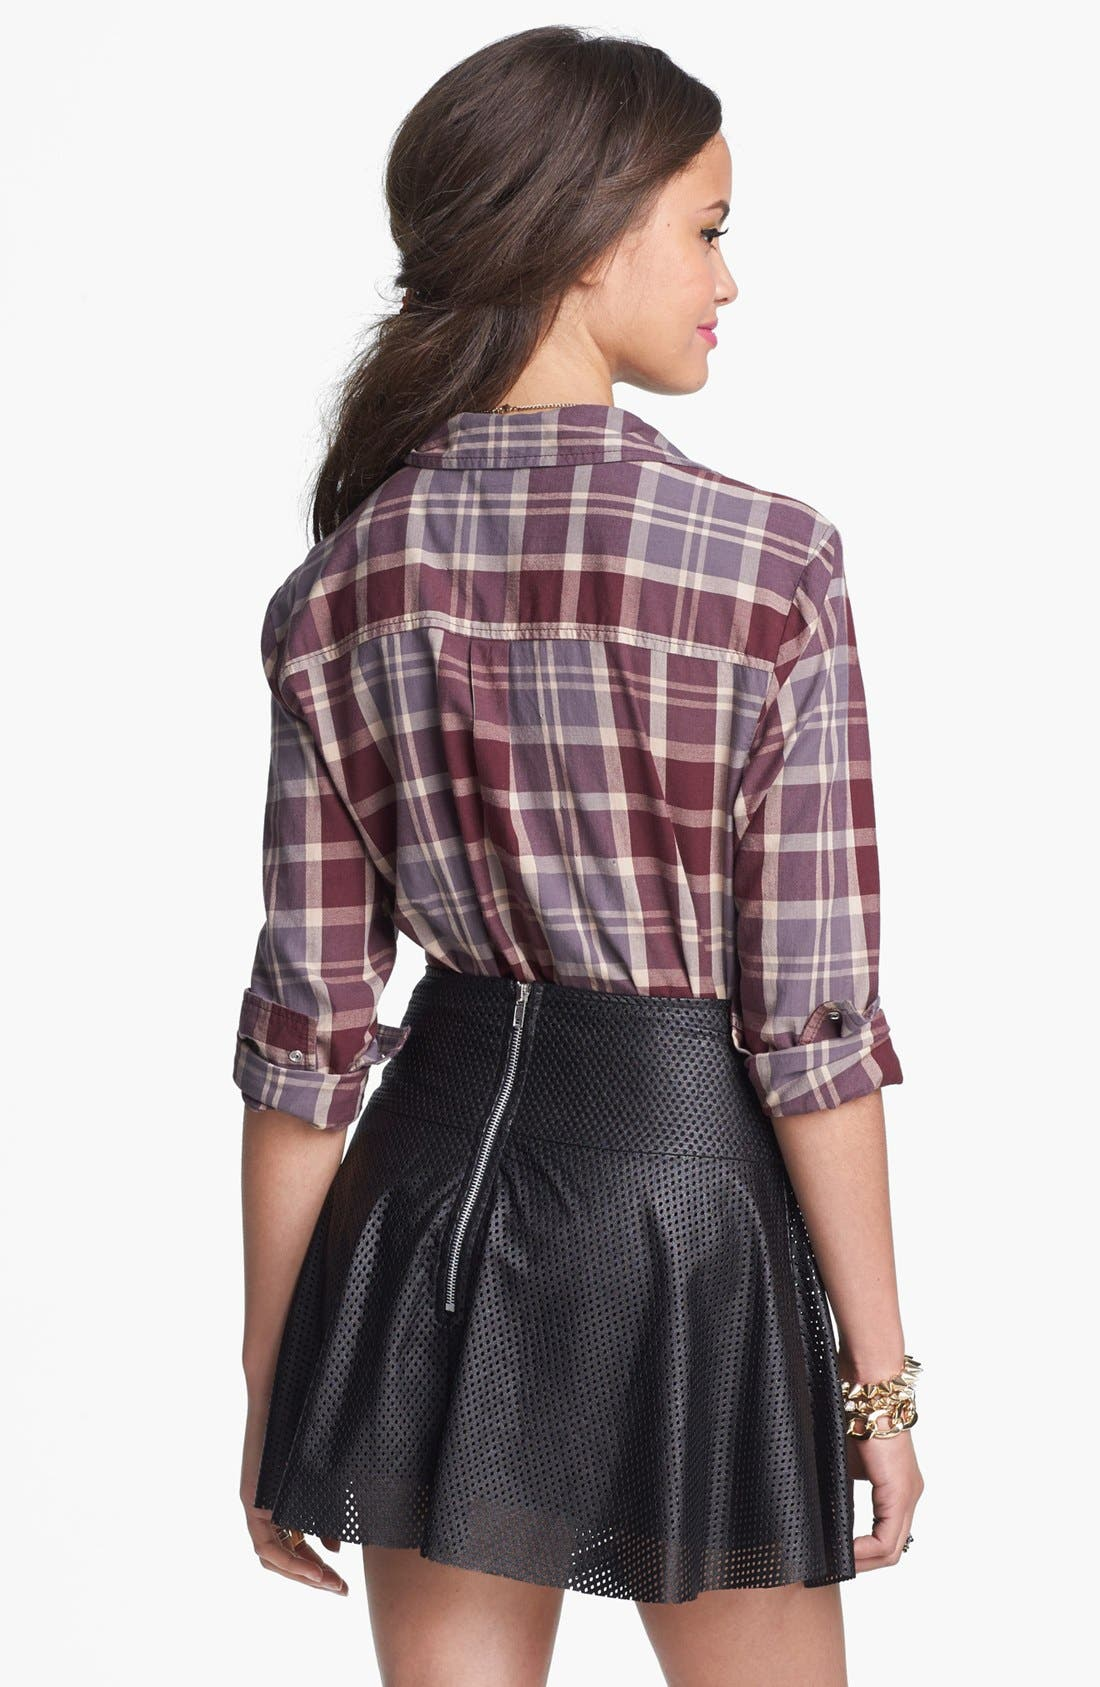 LILY WHITE, Perforated Faux Leather Skater Skirt, Alternate thumbnail 2, color, 001